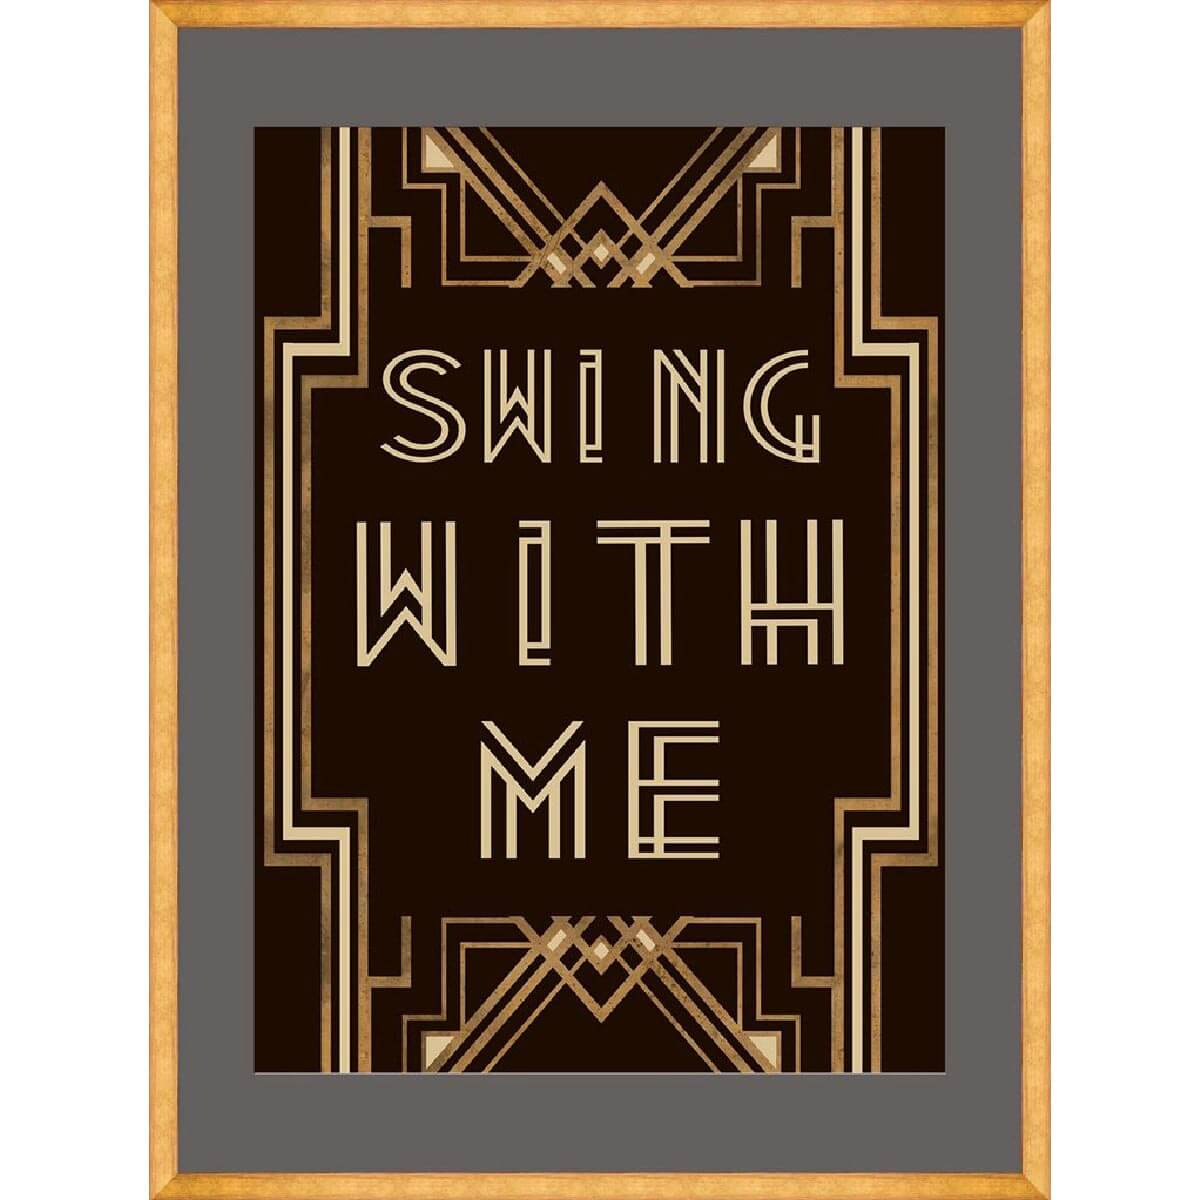 Swing-with-me-2-Framed-Art